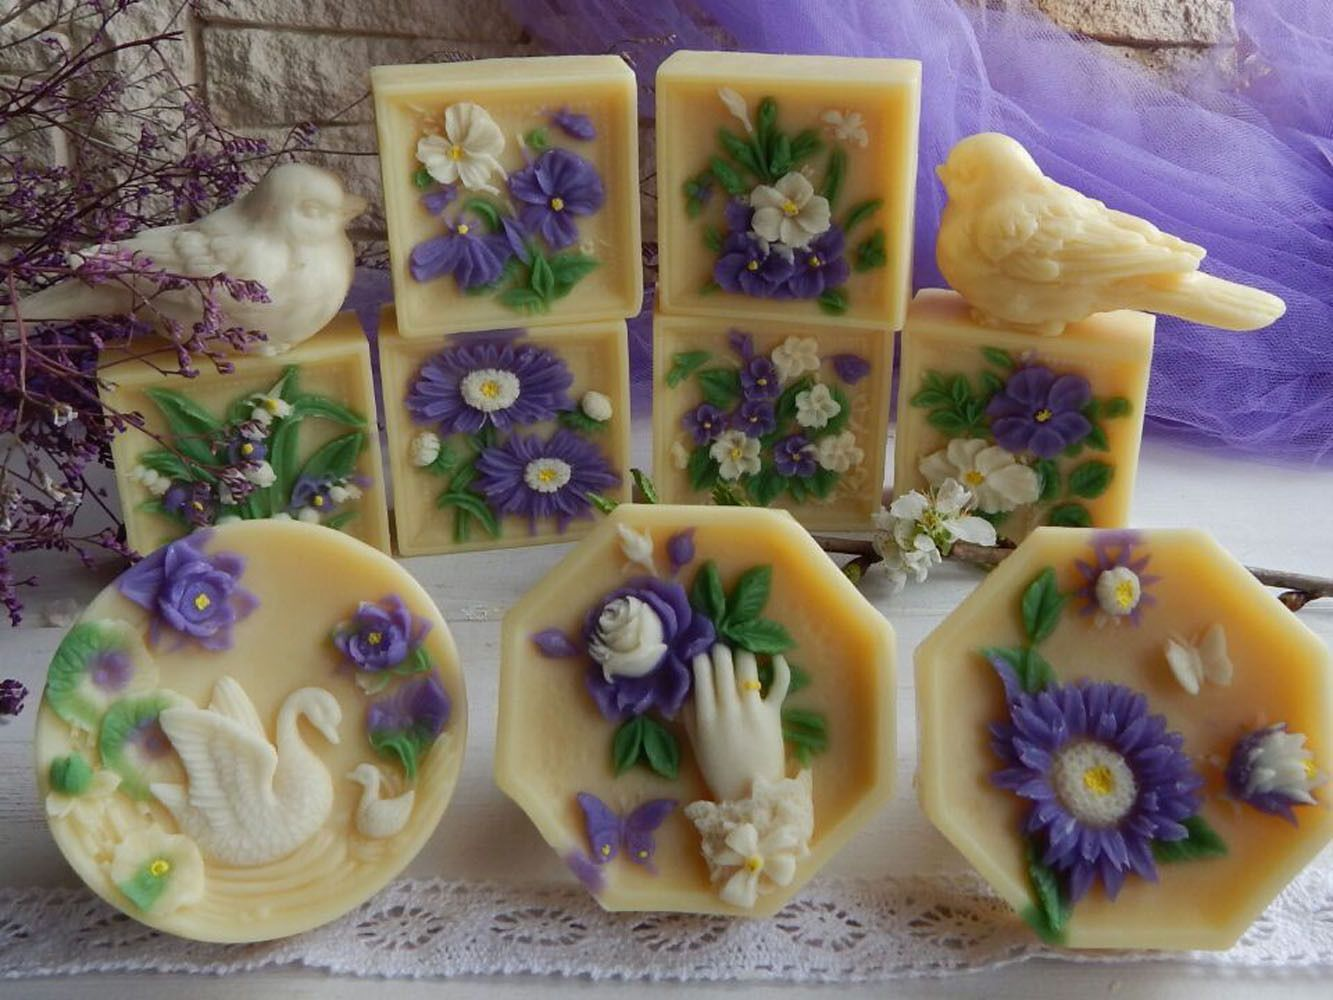 Details about Oval Flower Silicone Soap Candle Mold Soap